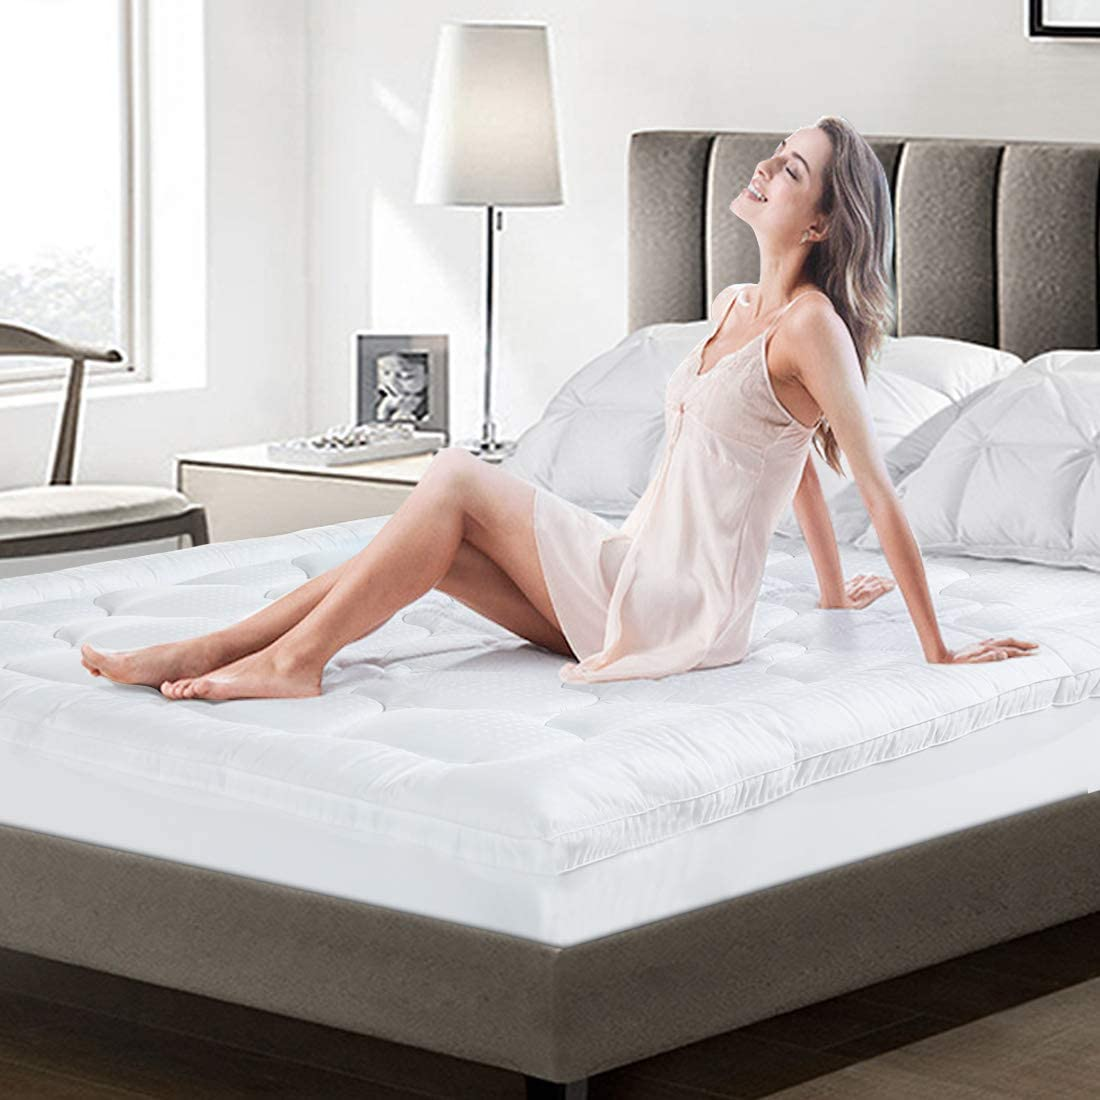 COHOME Full Size Mattress Topper Extra Thick Cooling Mattress Pad 400TC Cotton Top Plush Pillow Top Mattress Cover with 8-21 Inch Deep Pocket